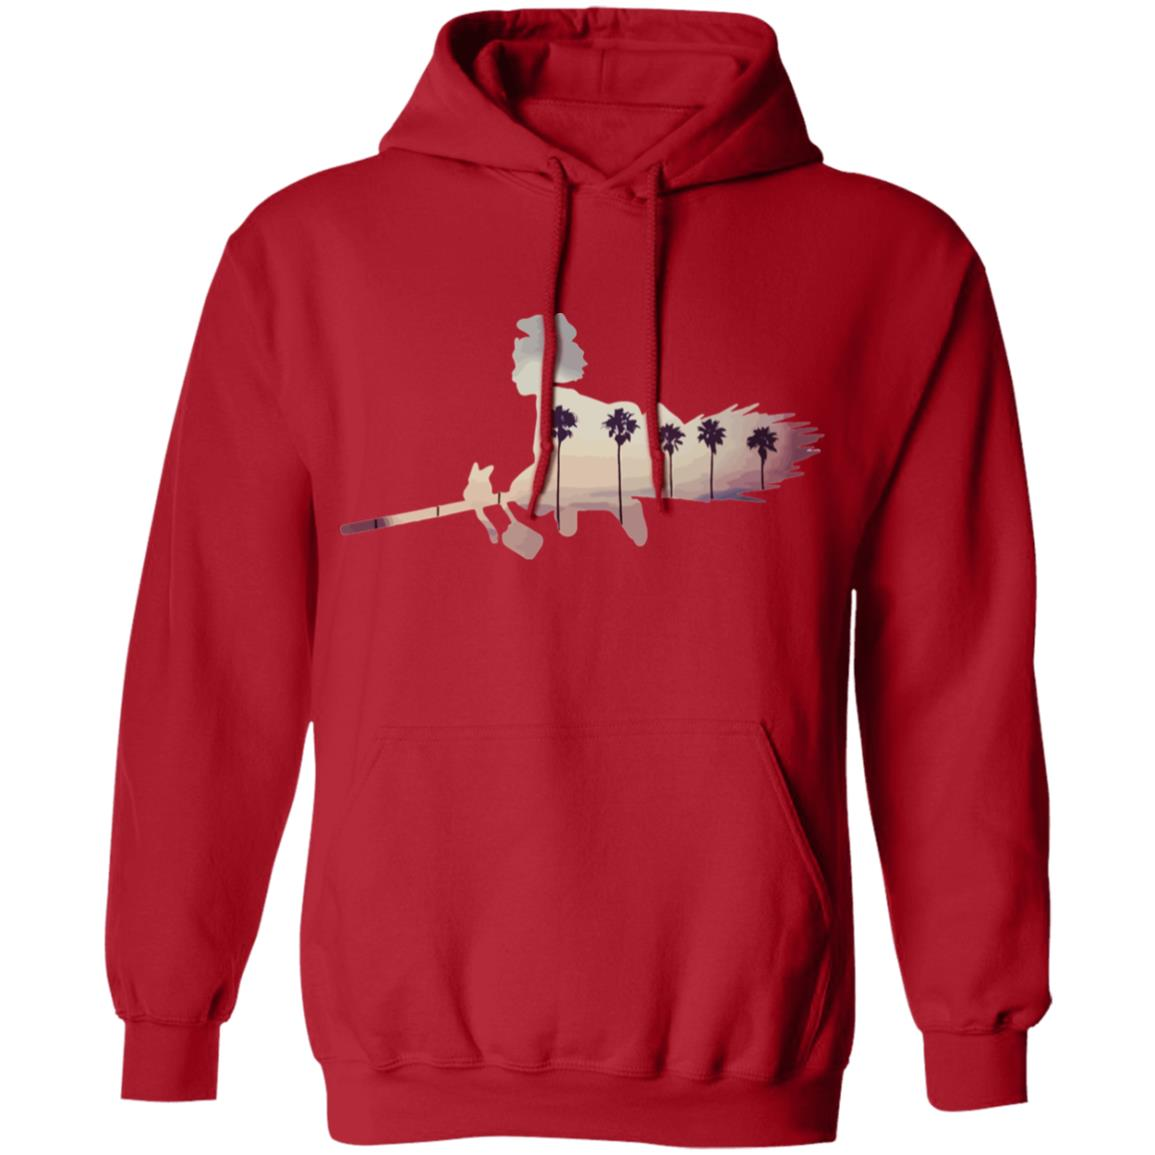 Kiki's Delivery Service – California Sunset Hoodie